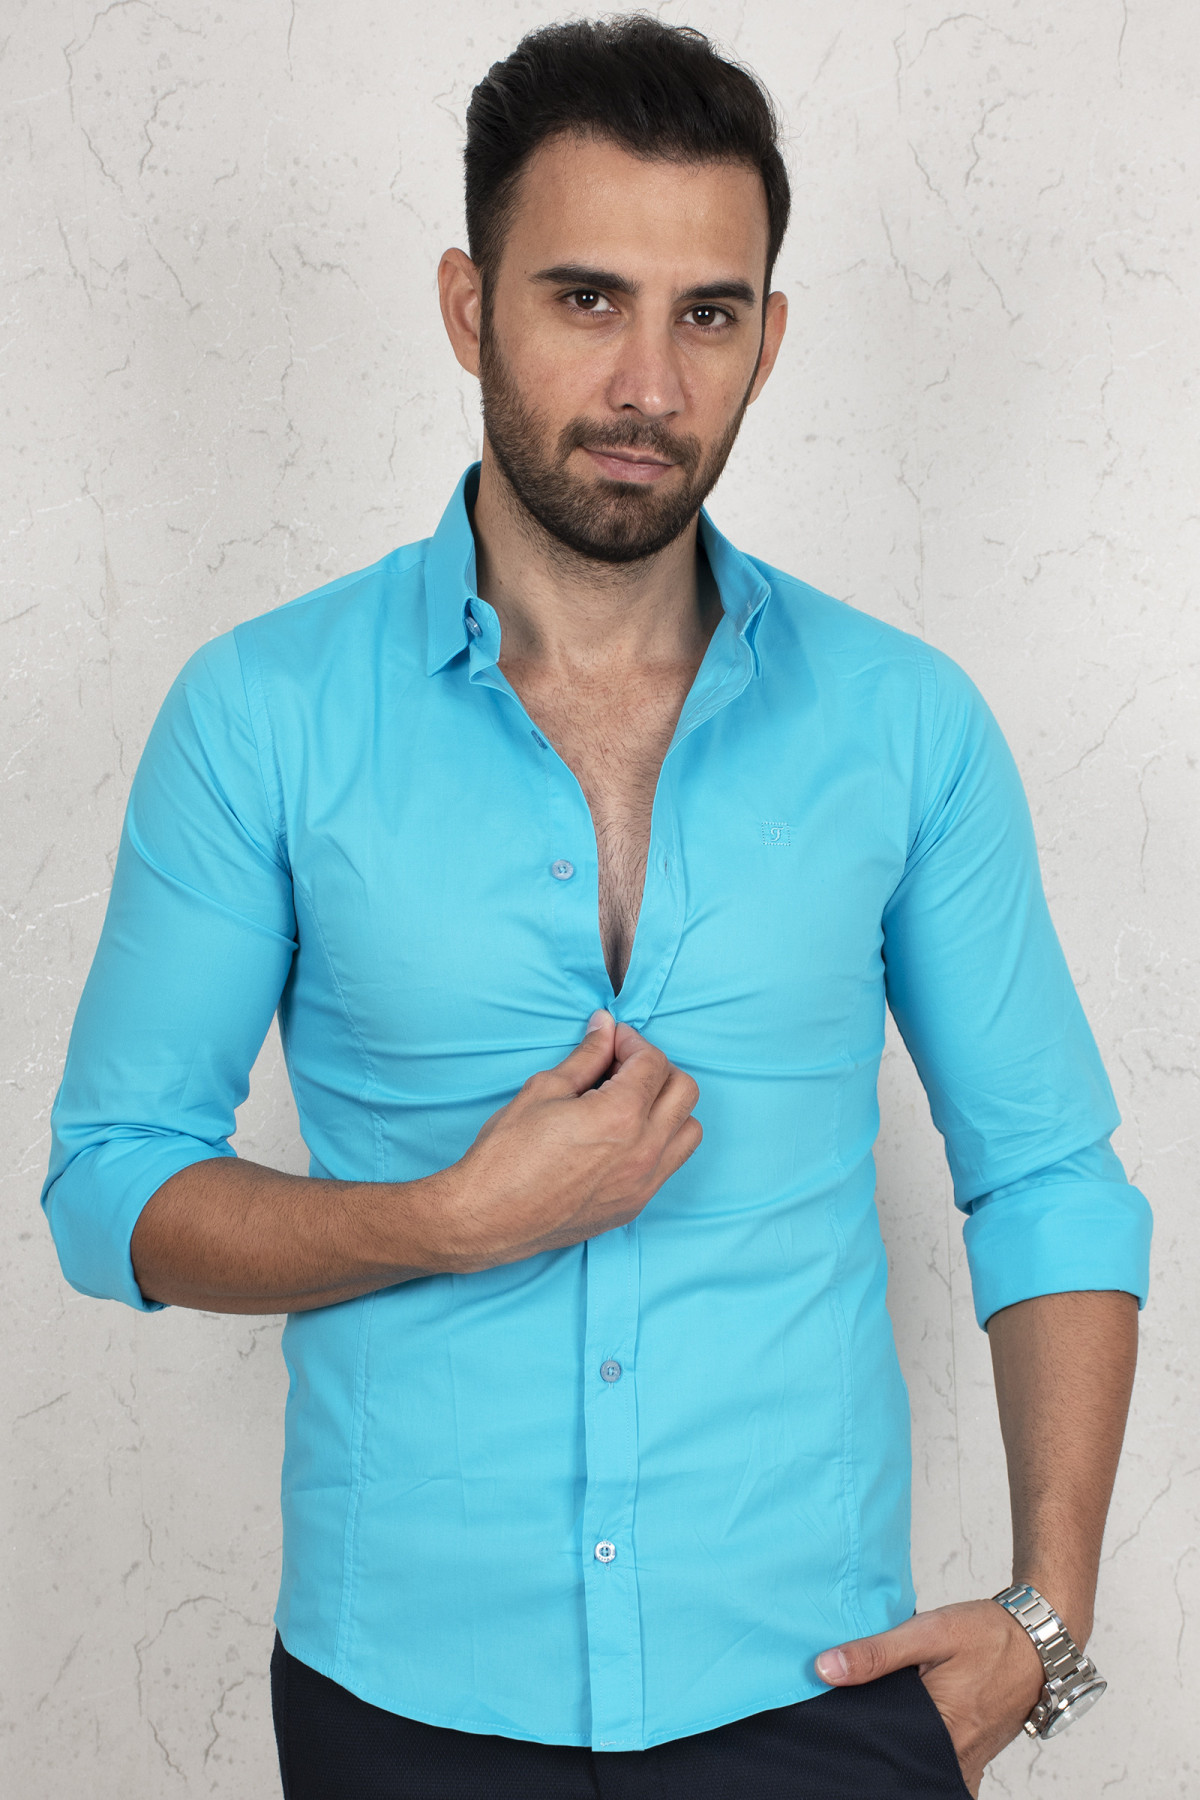 DeepSEA Turquoise Casual Normal Mould Men Shirt 100 Cotton Long Sleeve Casual Special Day Party Business Four Seasons Casual clothing 2004447